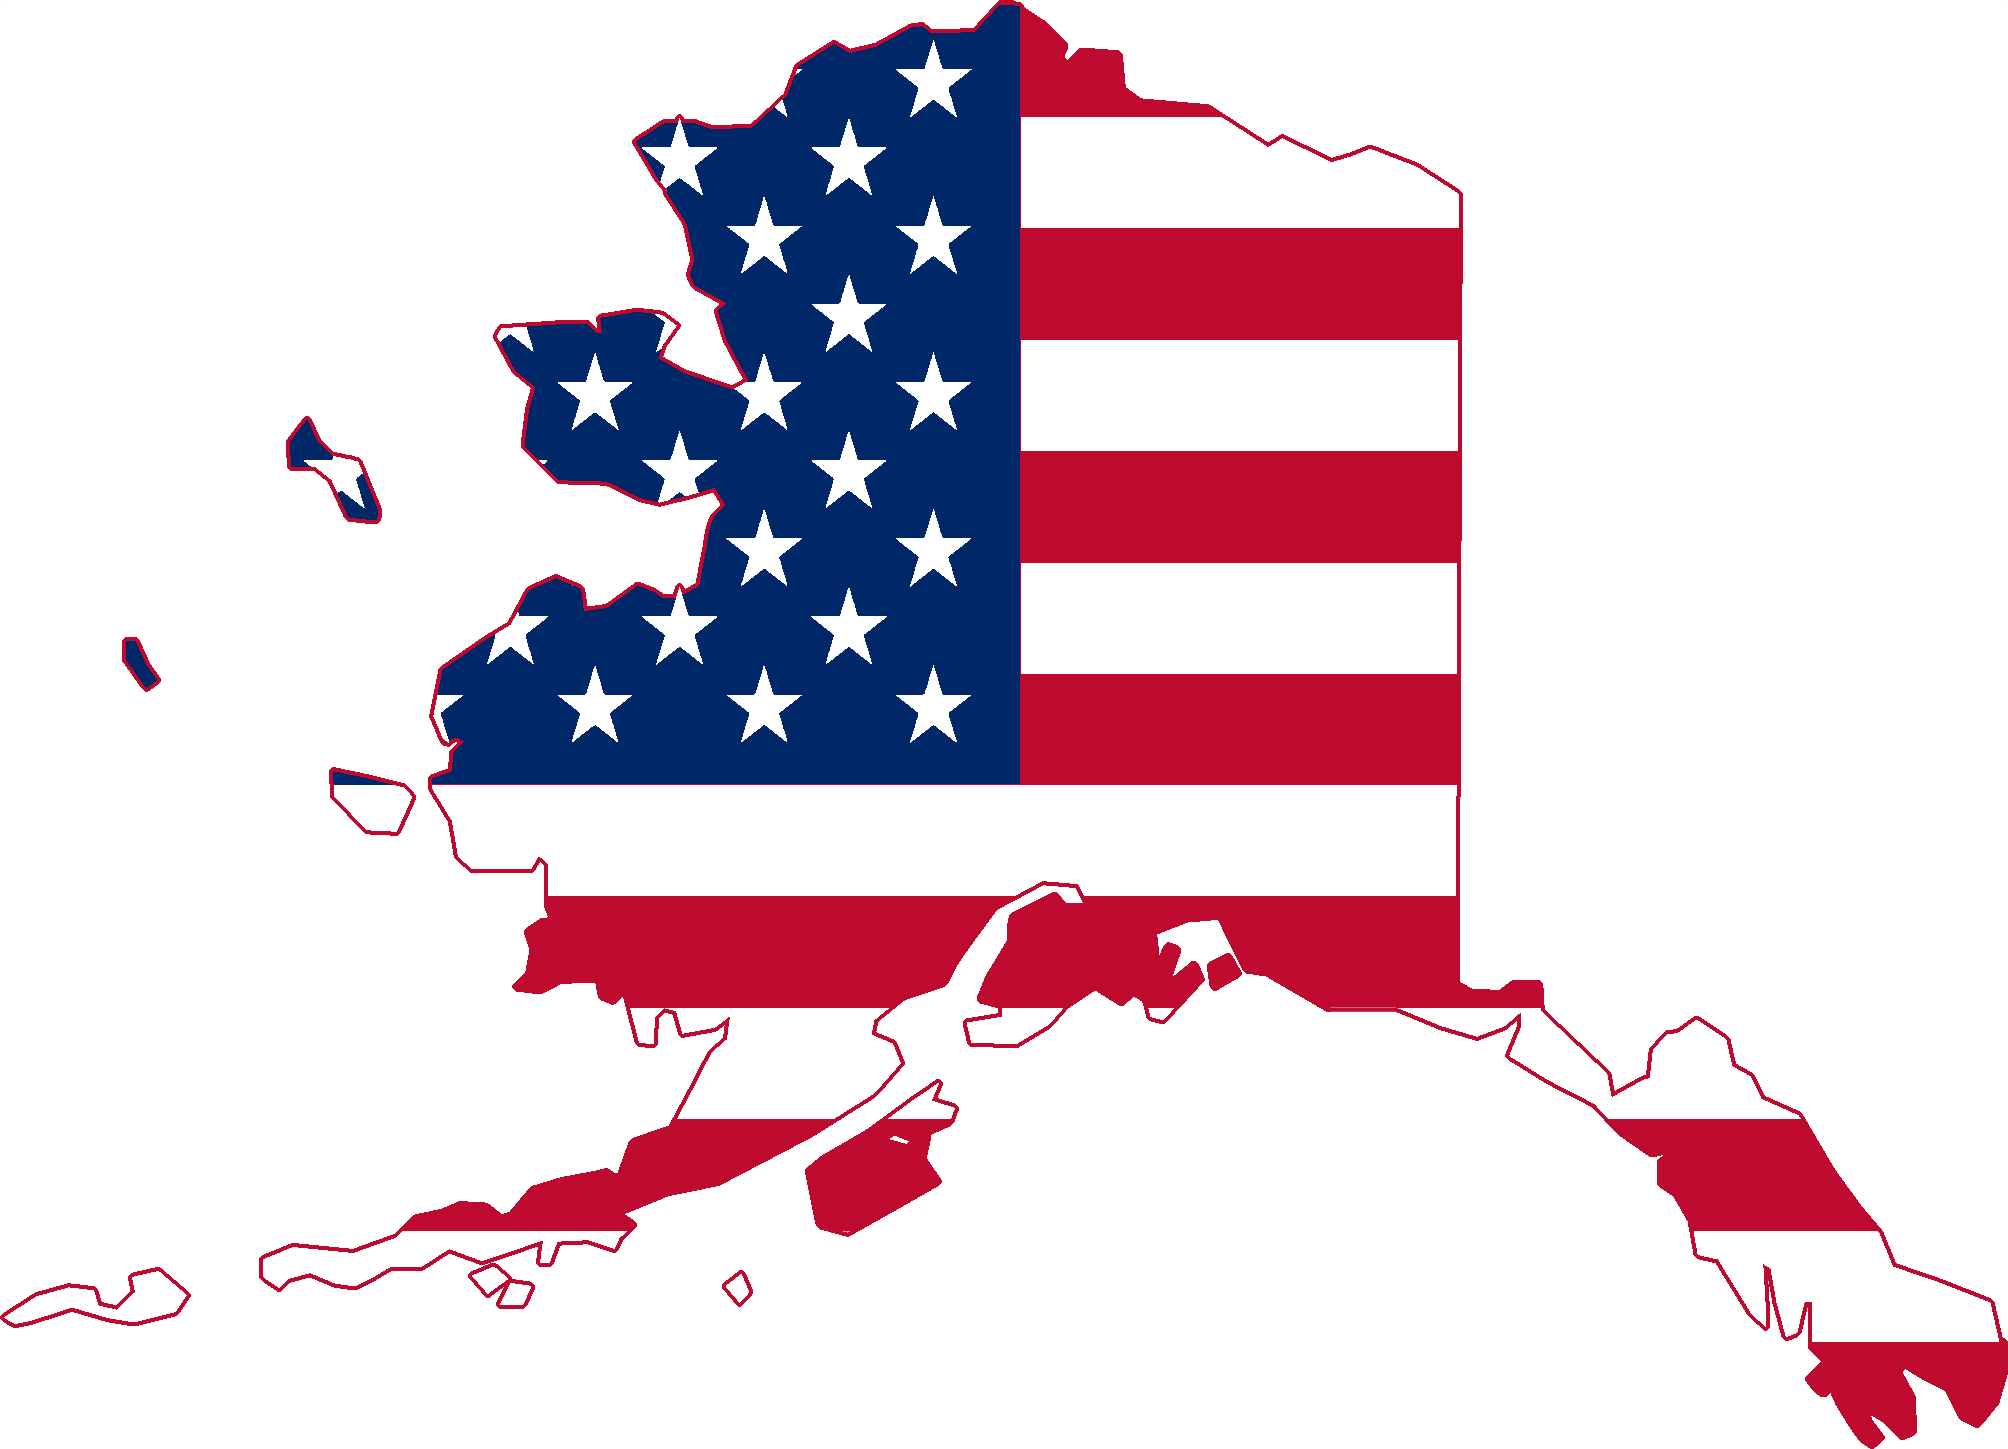 FileFlag Map Of Alaska USApng Wikimedia Commons - Alaska usa map